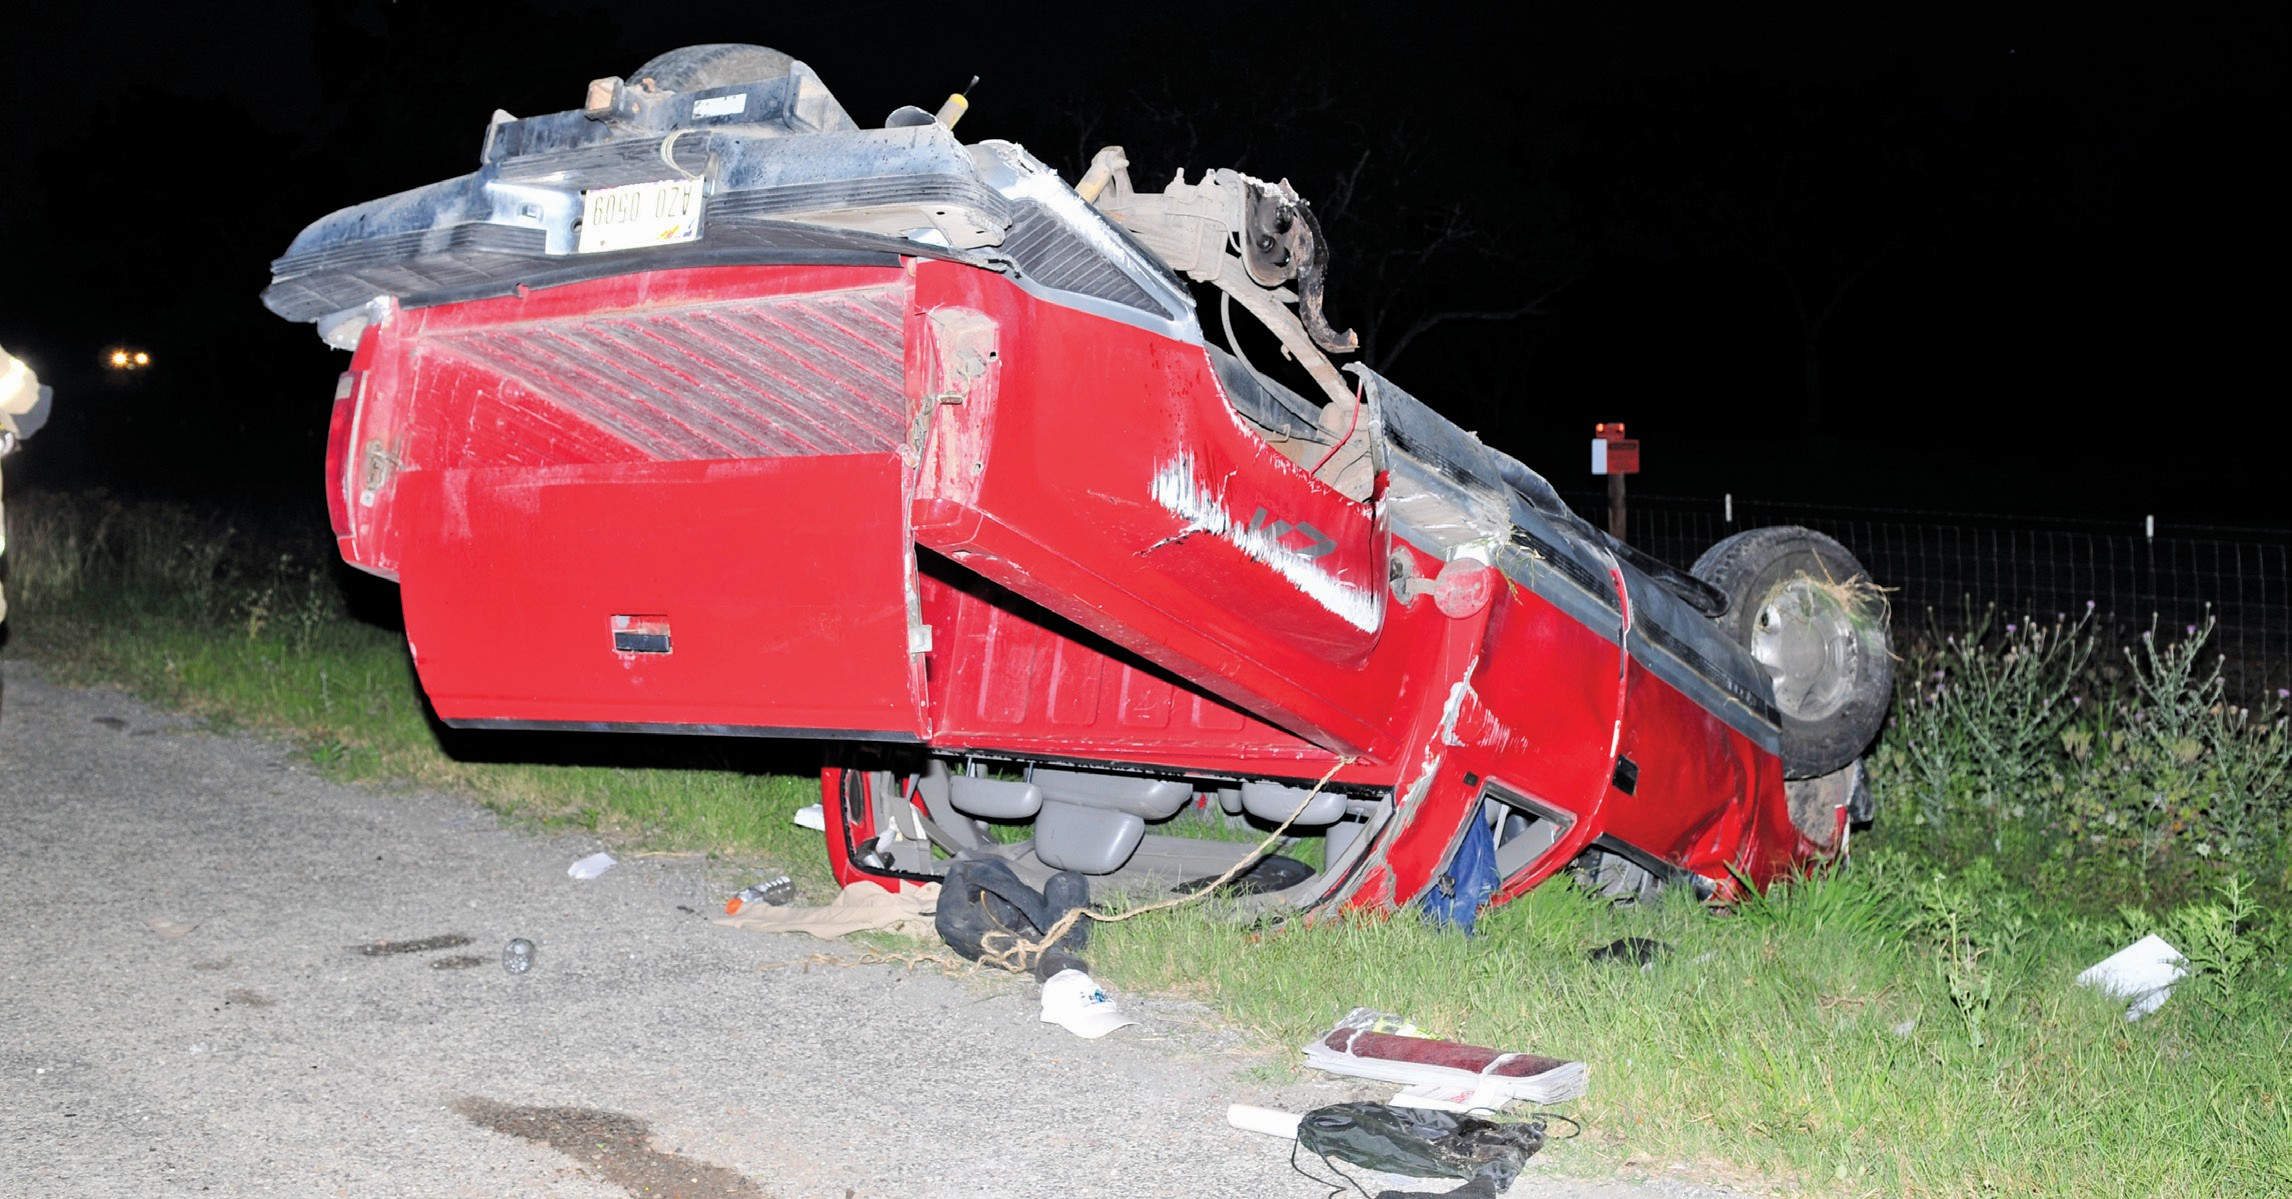 A truck rolled over on Highway 16 north of Poteet around 7 p.m. on Sunday. Department of Public Safety Troopers, Atascosa County Sheriff's Deputies and Poteet Volunteer Fire Department worked the scene. EMS checked out the driver, who sustained nothing more than a cut to his face and hand. The driver refused transport.